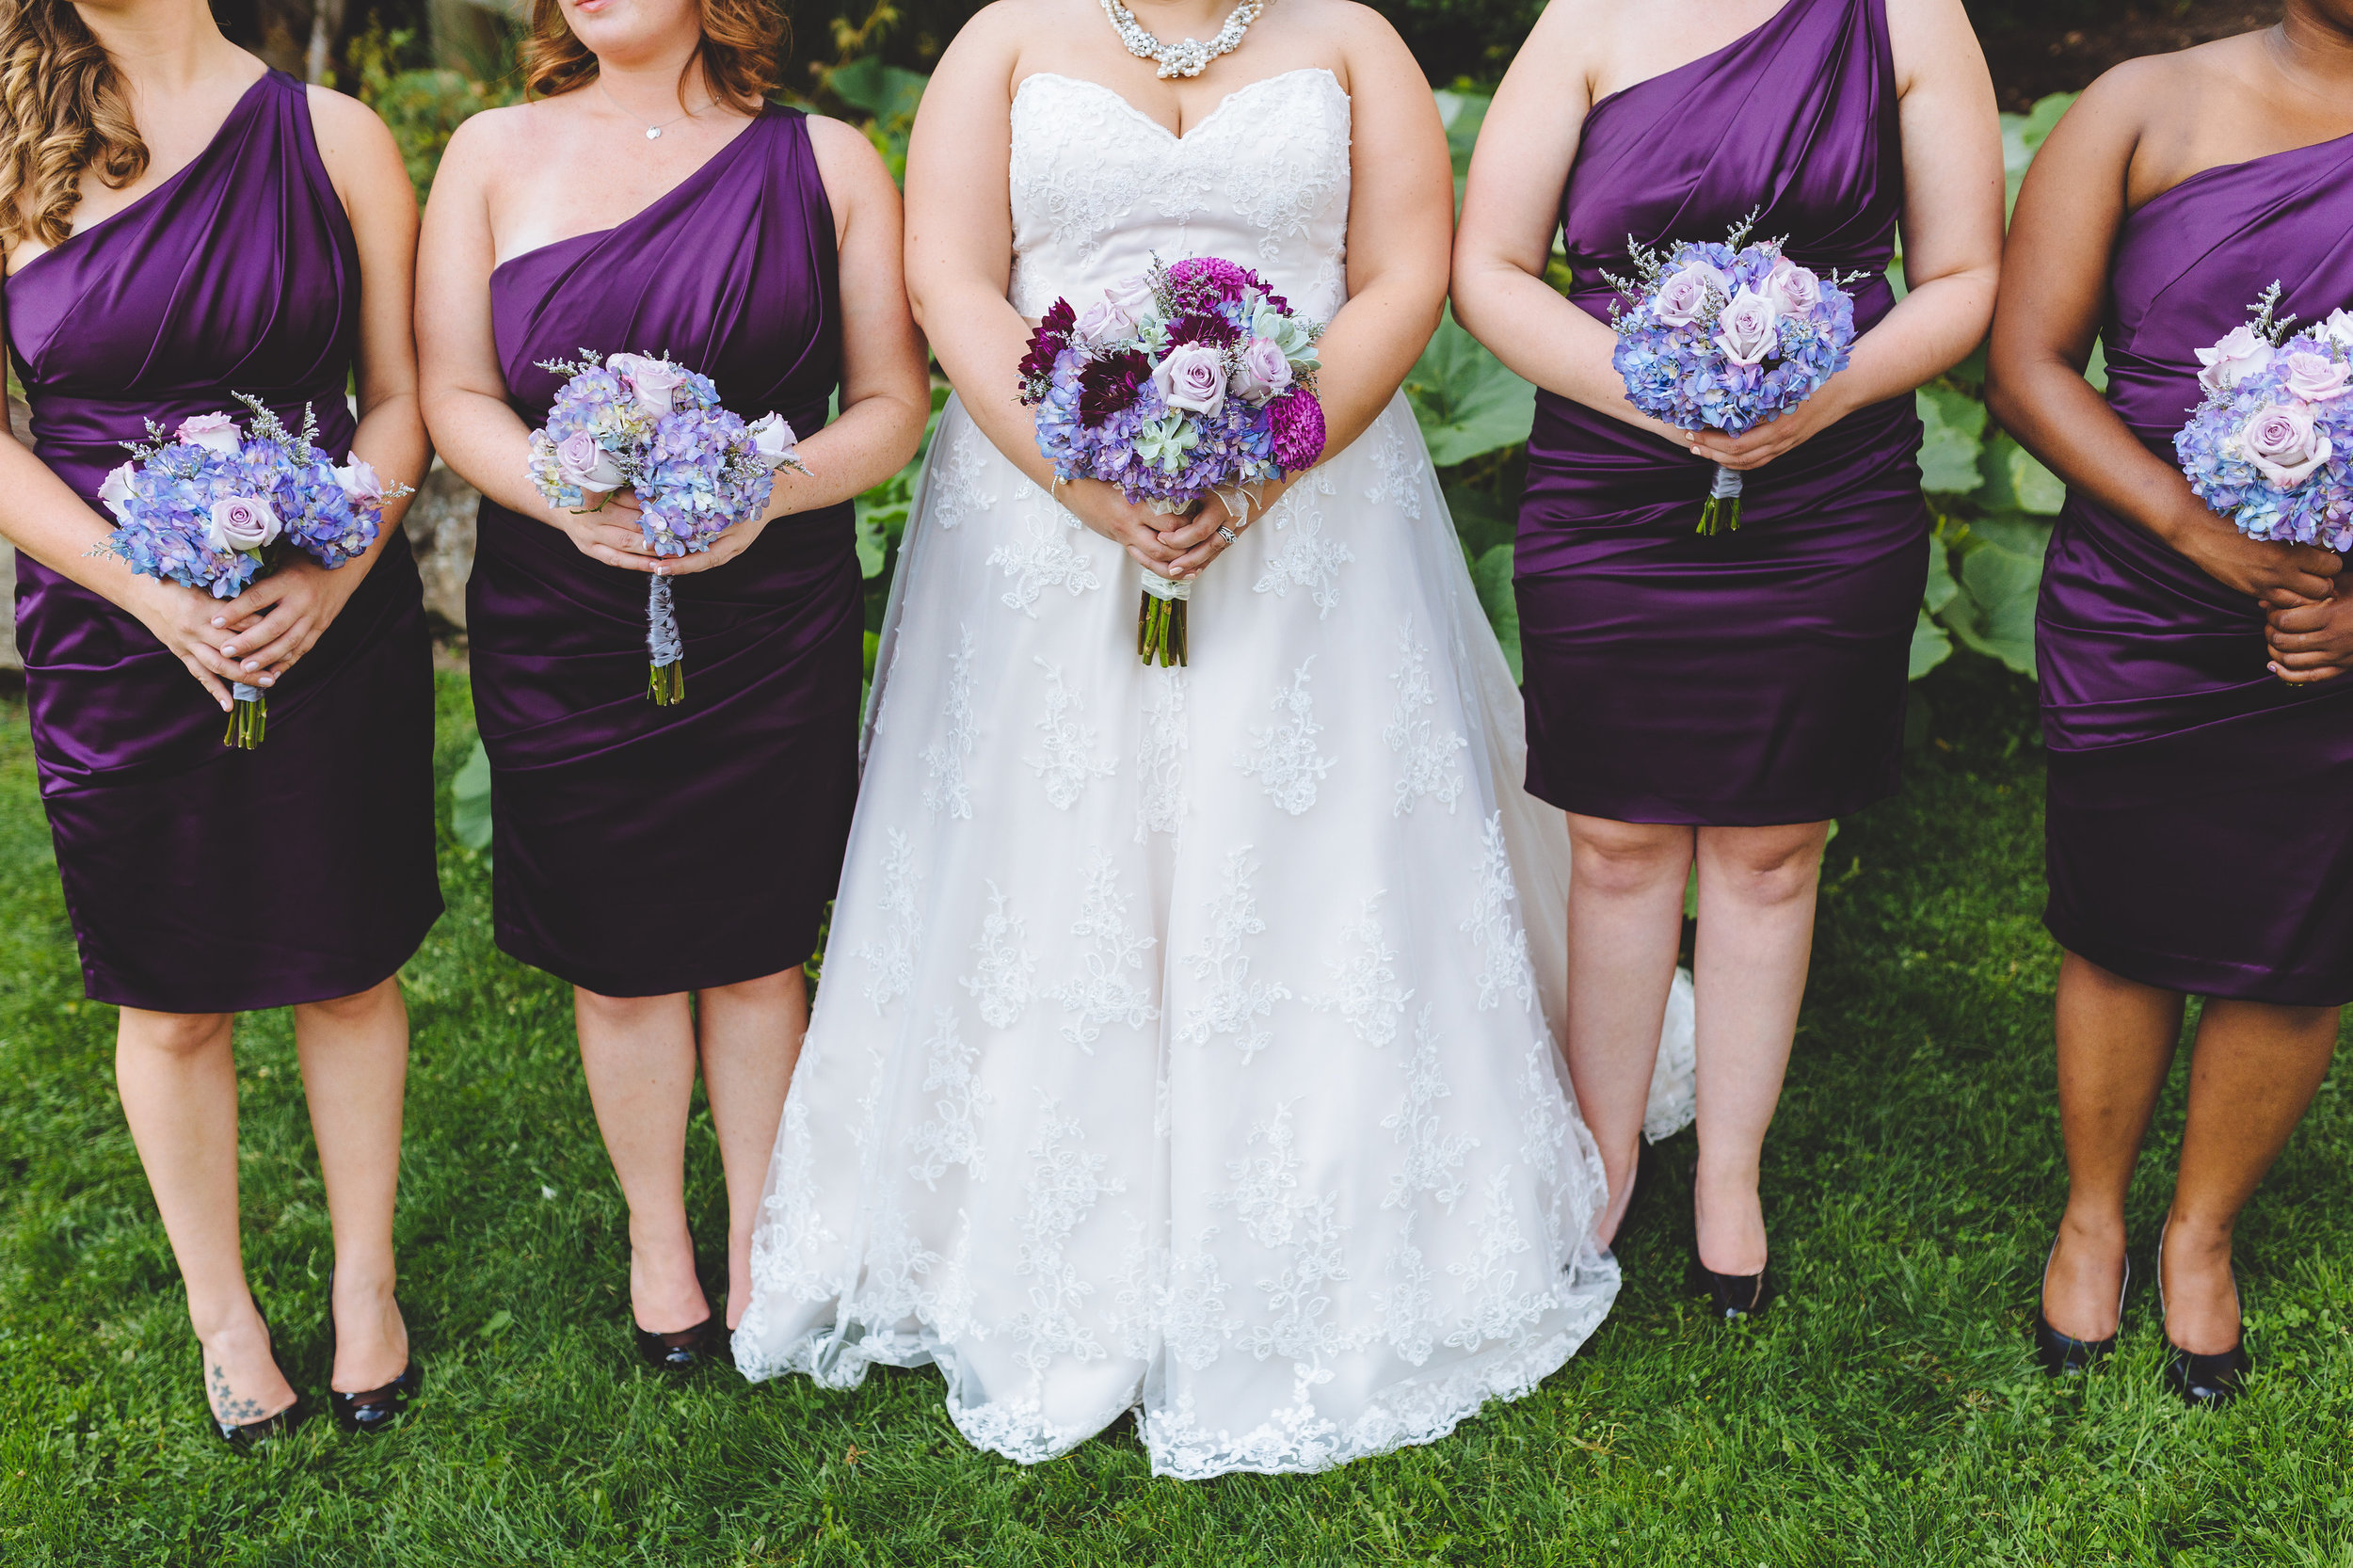 Bridesmaids_Purple_Dresses